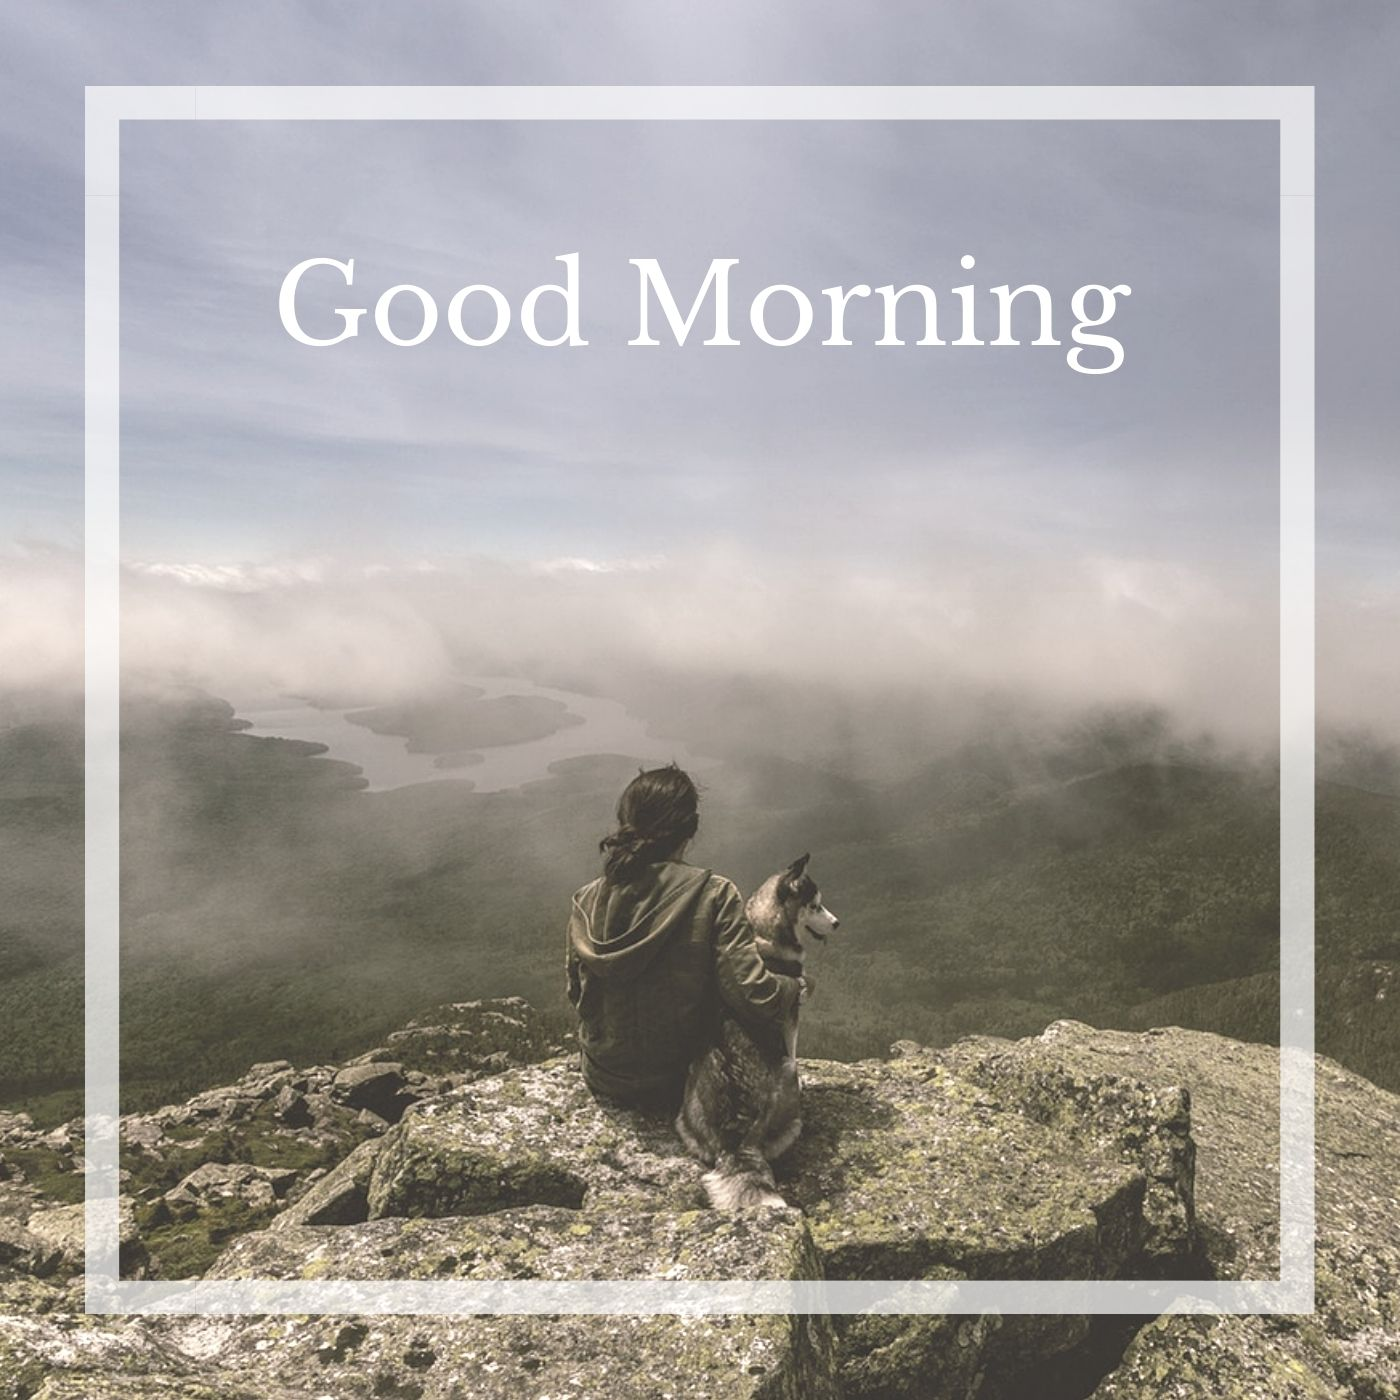 Good Morning Cloud on Hill Image full HD free download.